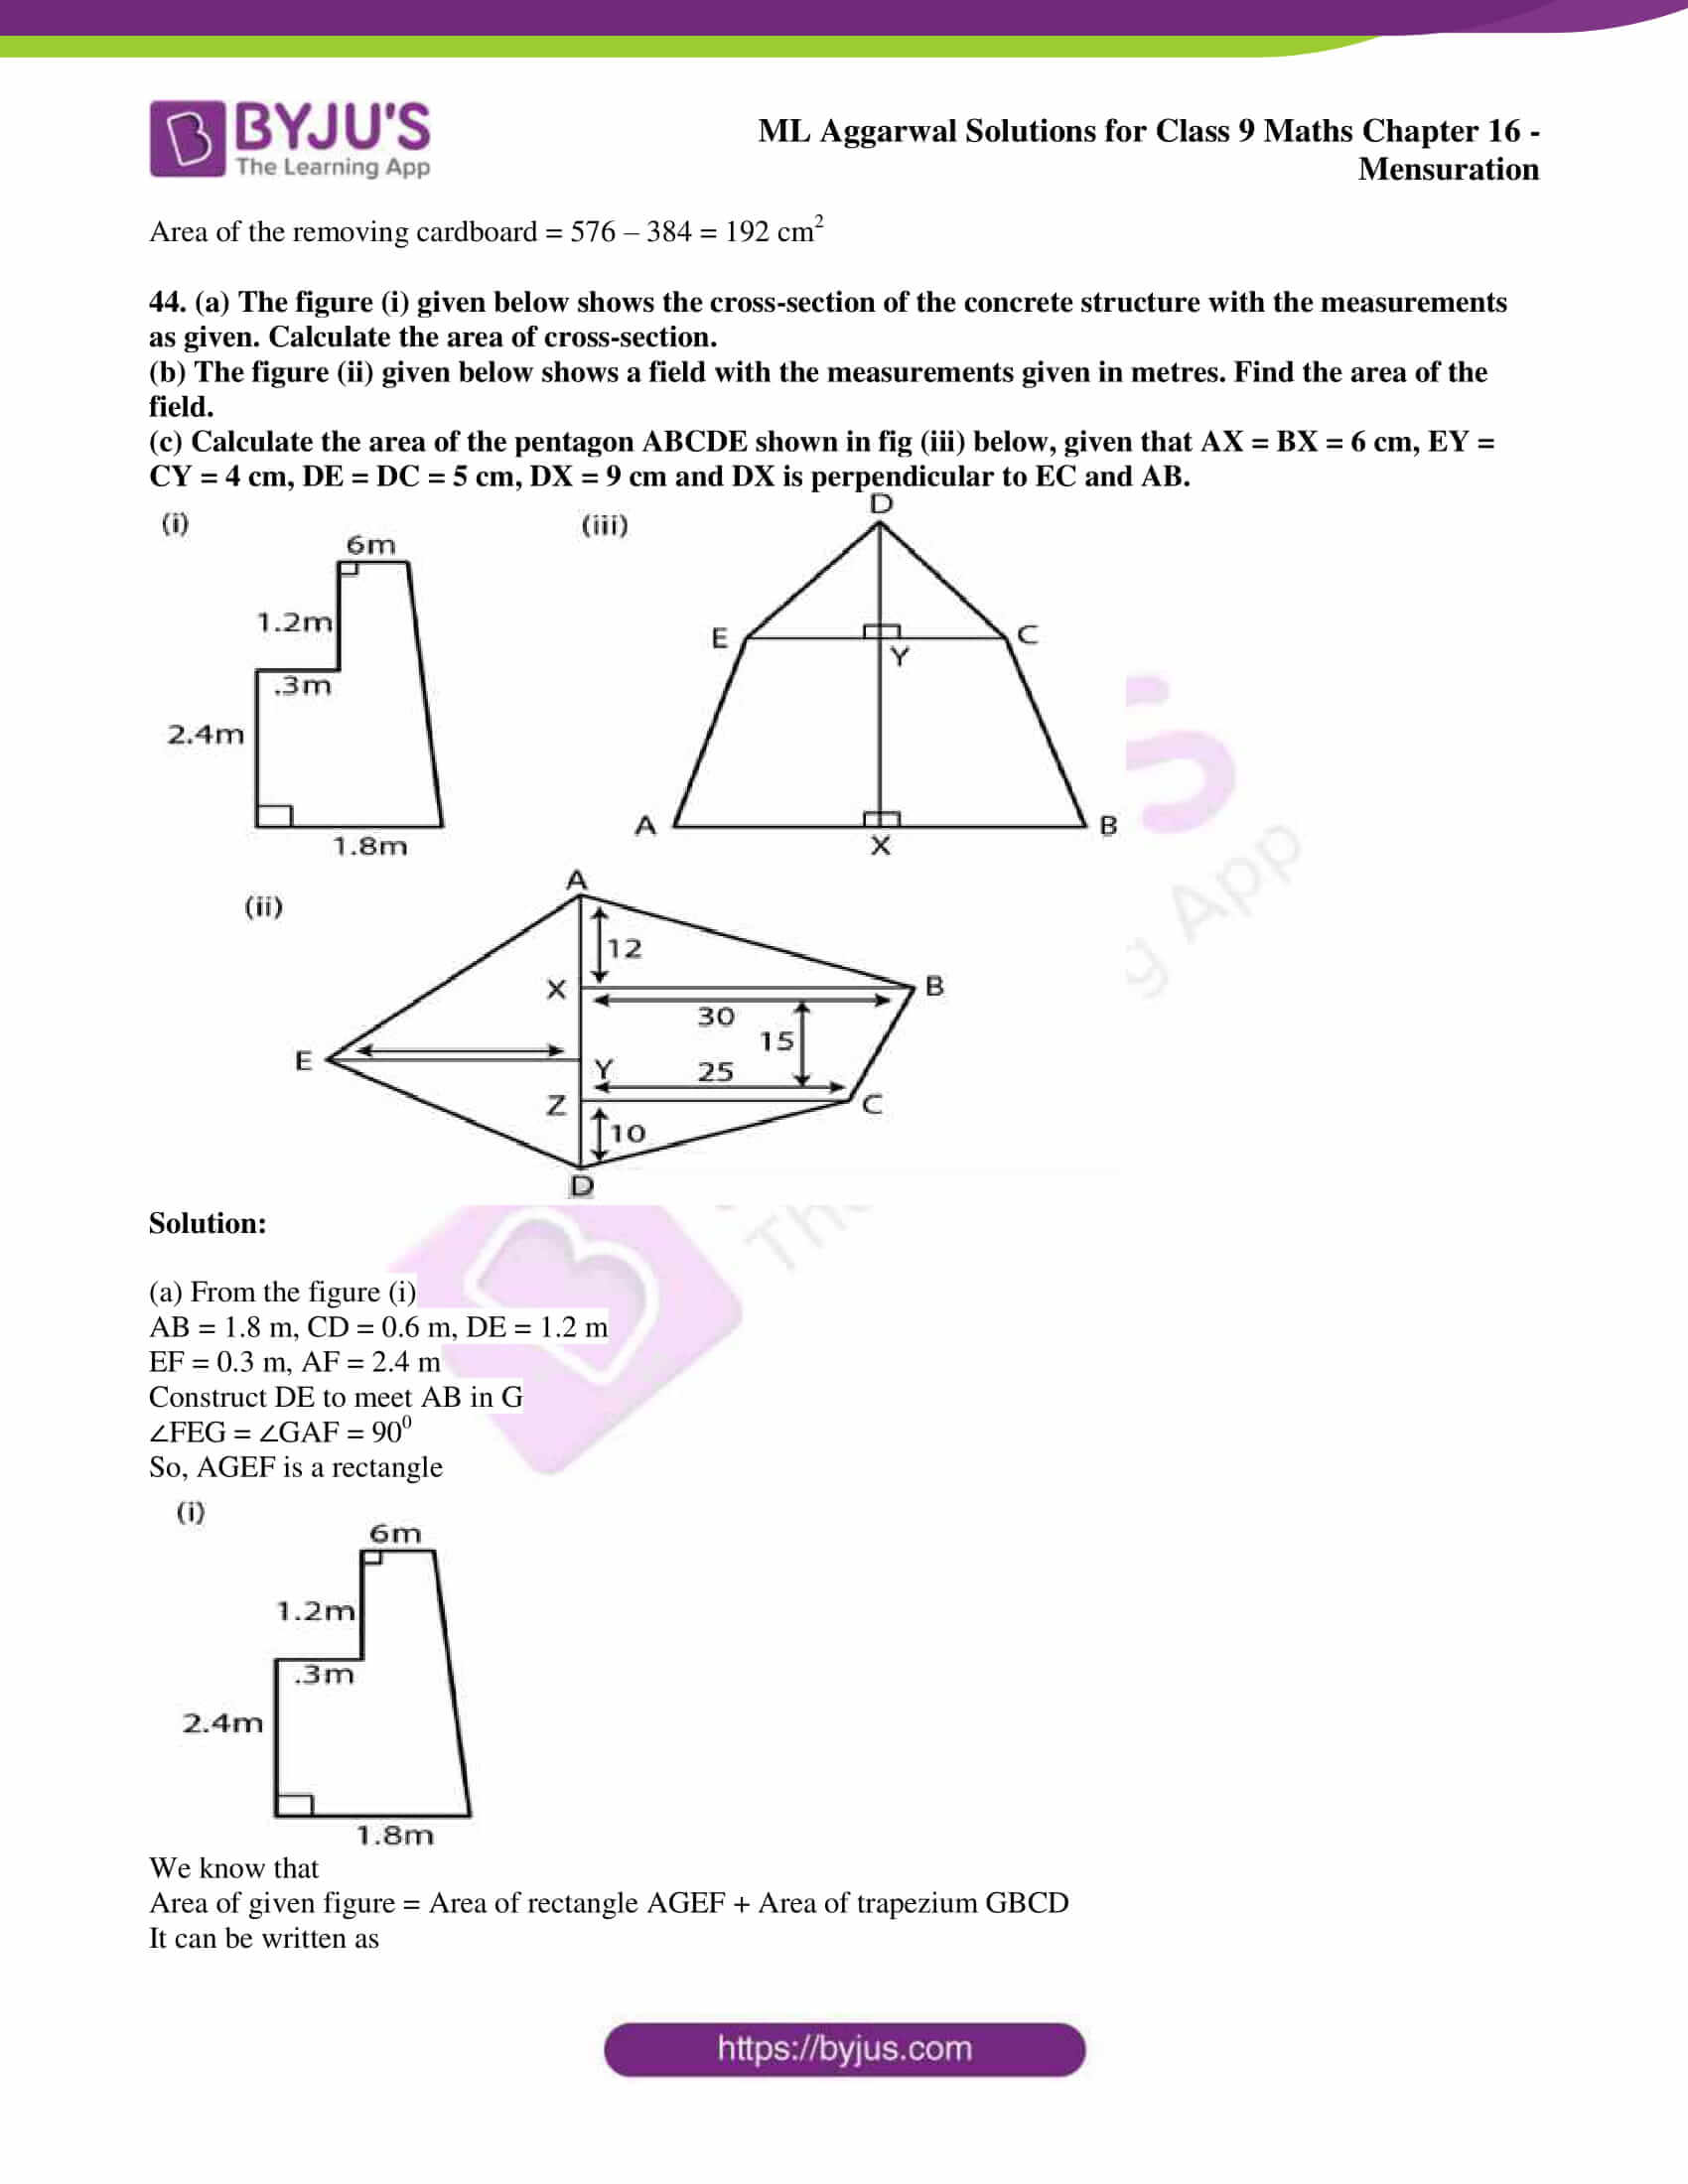 ml aggarwal solutions for class 9 maths chapter 16 067